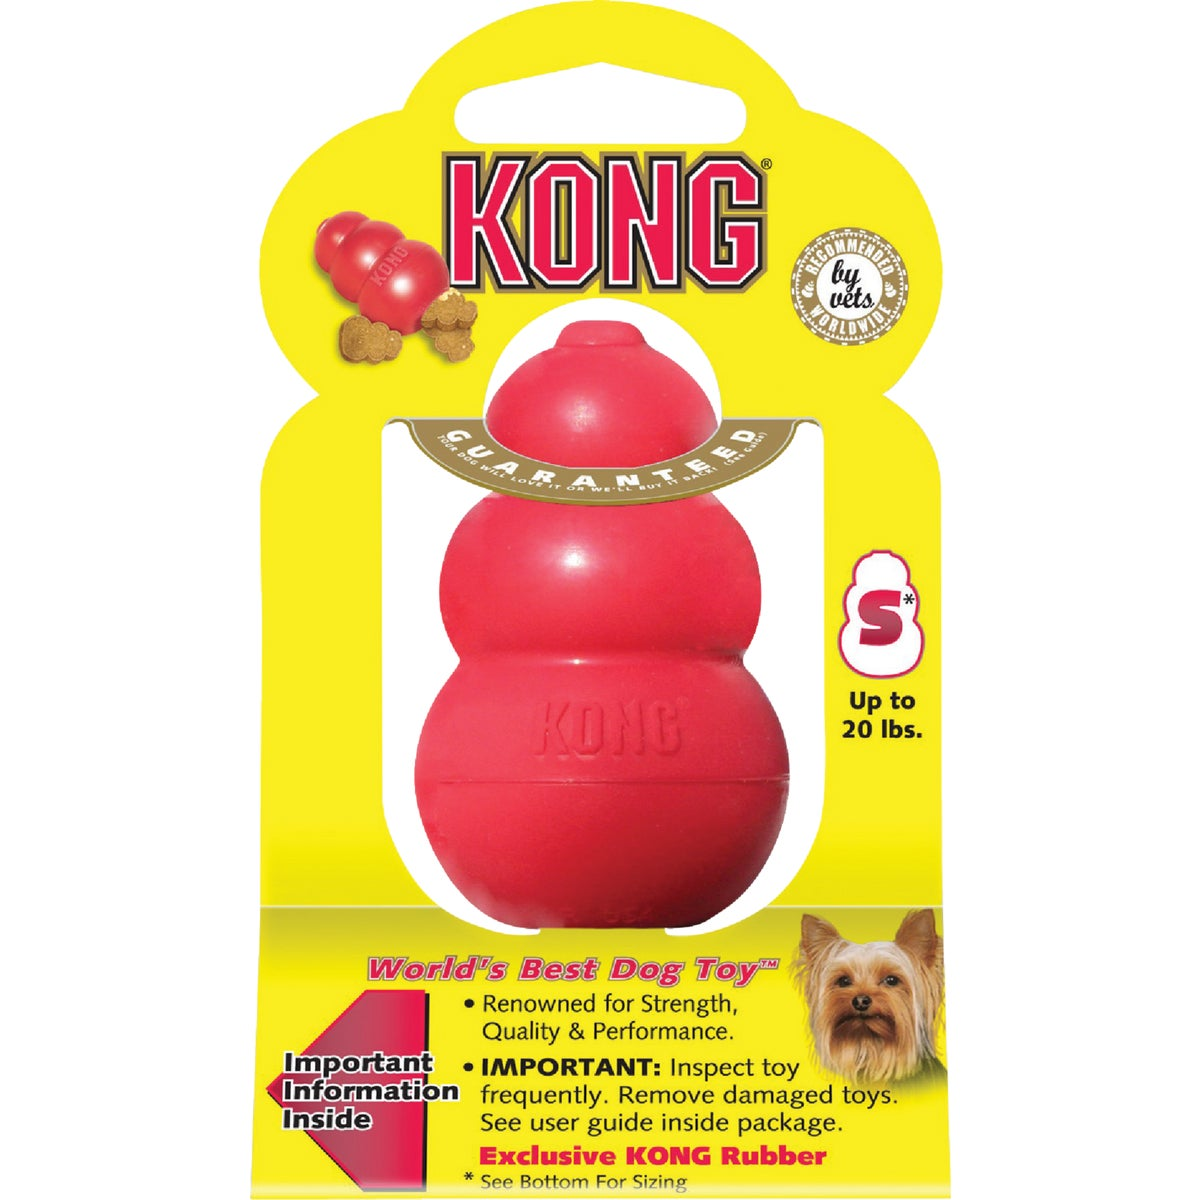 SMALL RED KONG DOG TOY - T3MTXR3 by Kong Company